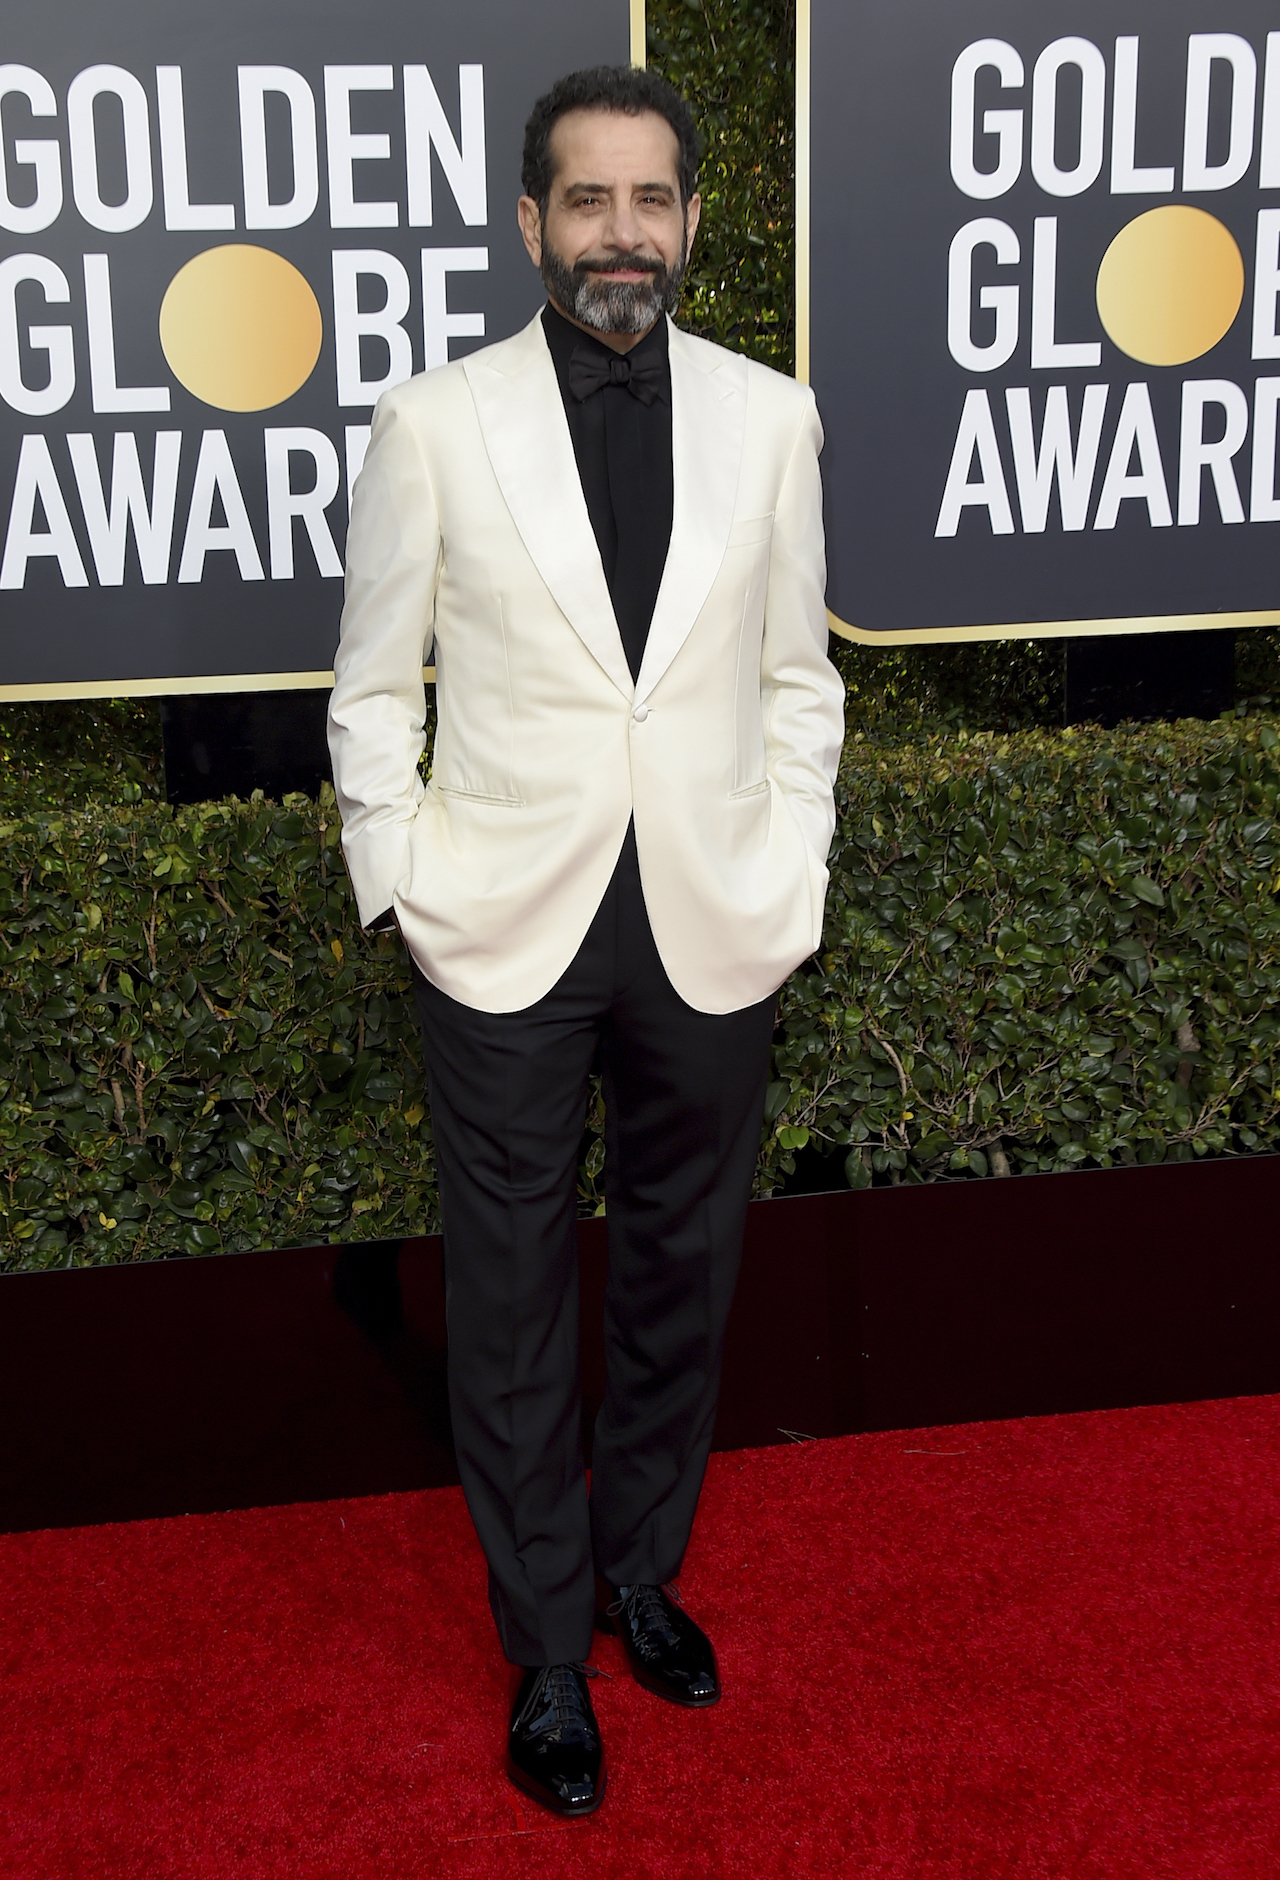 "<div class=""meta image-caption""><div class=""origin-logo origin-image ap""><span>AP</span></div><span class=""caption-text"">Tony Shalhoub arrives at the 76th annual Golden Globe Awards at the Beverly Hilton Hotel on Sunday, Jan. 6, 2019, in Beverly Hills, Calif. (Jordan Strauss/Invision/AP)</span></div>"